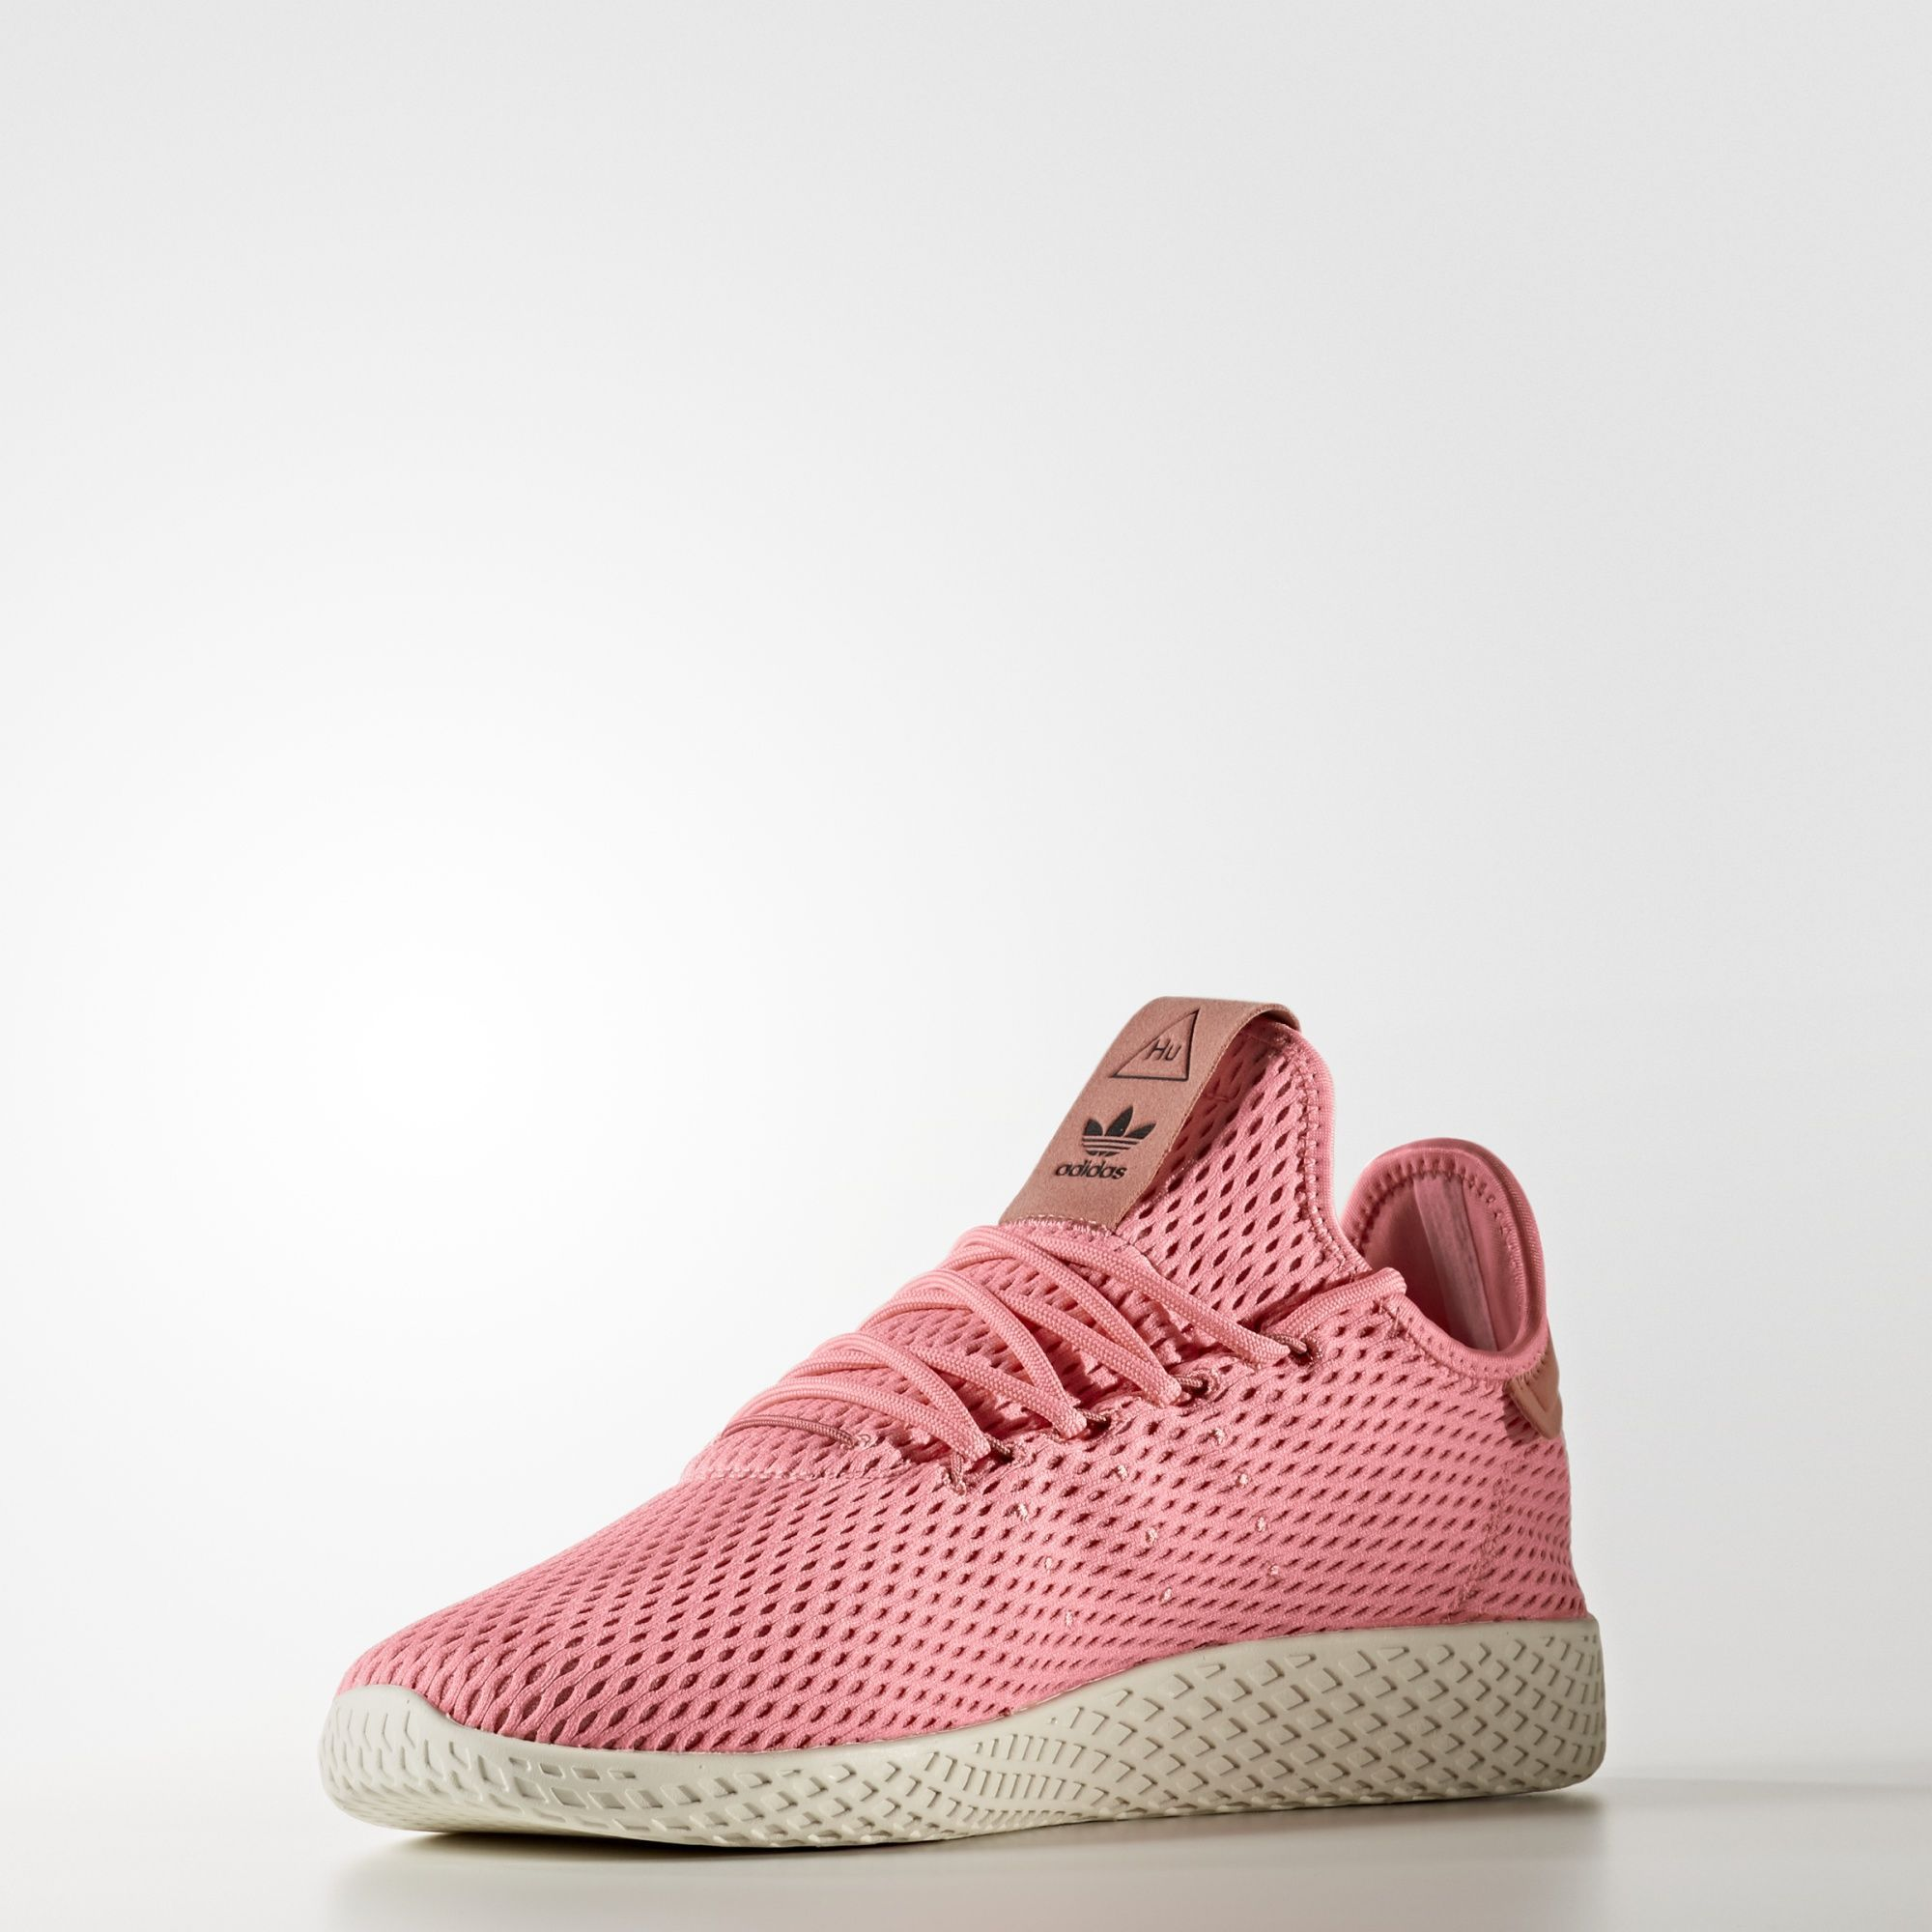 adidas - Pharrell Williams Tennis Hu Schoenen